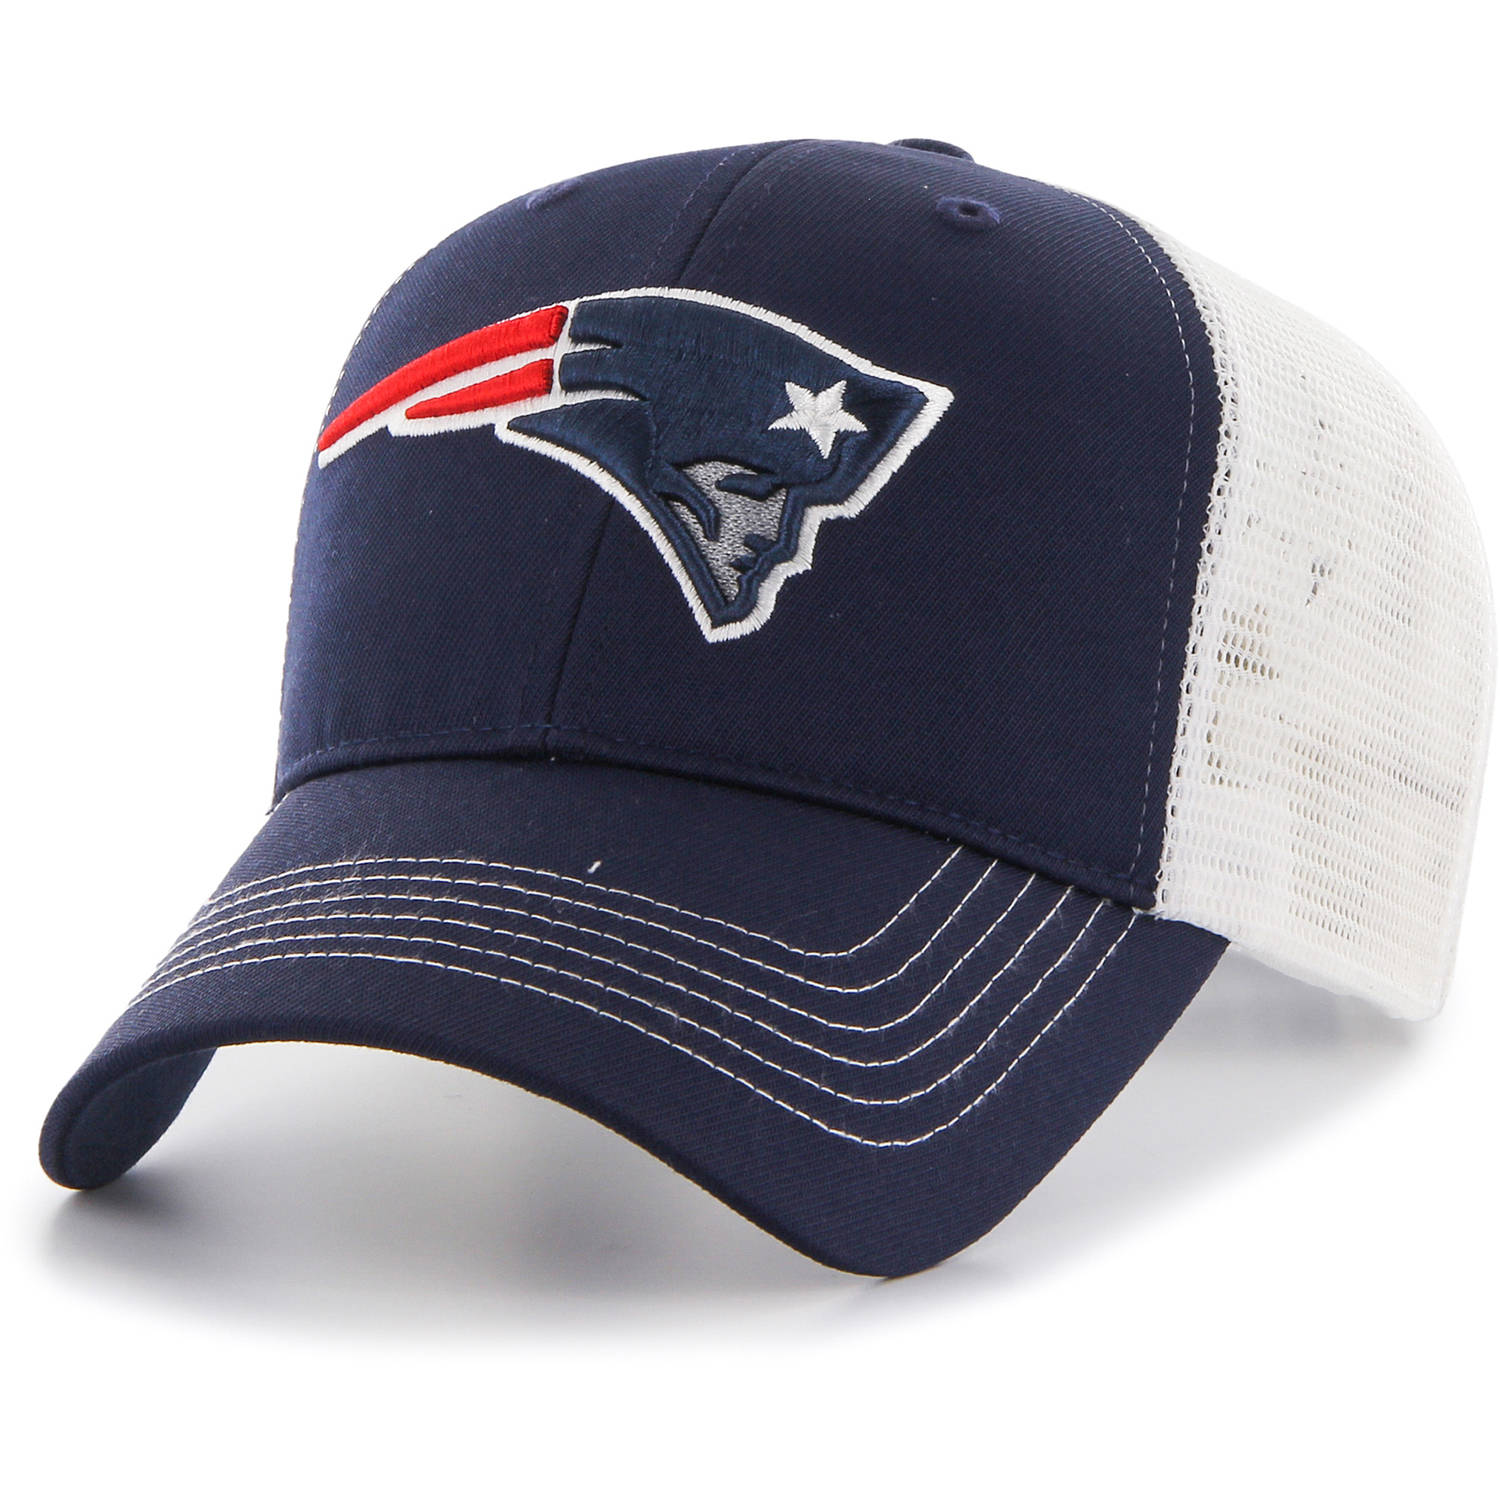 NFL New England Patriots Raycroft Cap / Hat by Fan Favorite